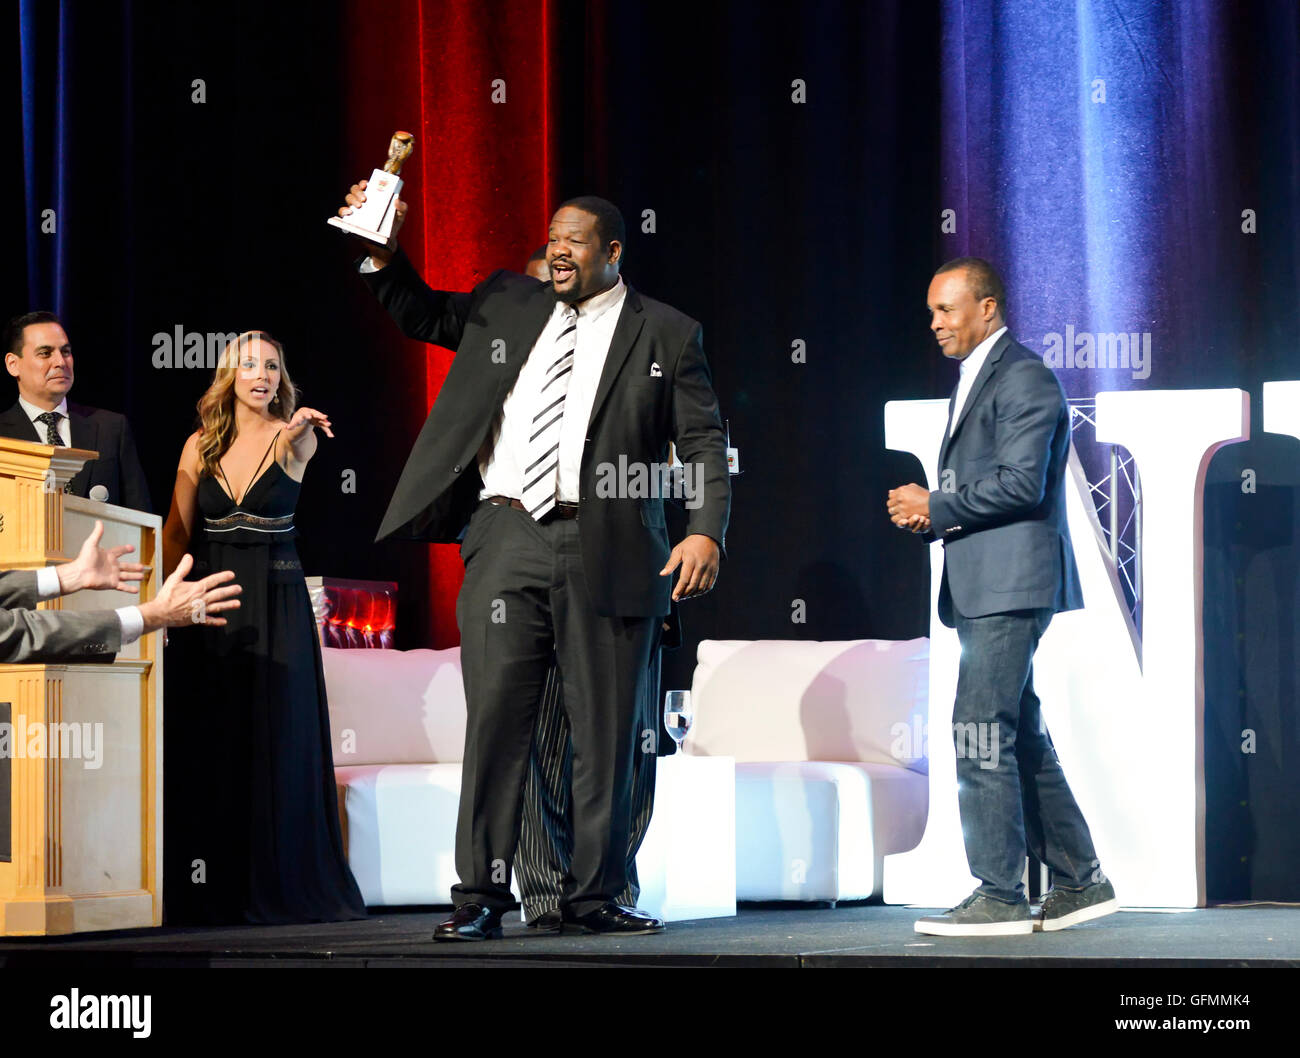 Las Vegas, Nevada, USA. 30th July, 2016. Riddick Bowe honored at the 4th Annual Nevada Boxing Hall of Fame Induction - Stock Image